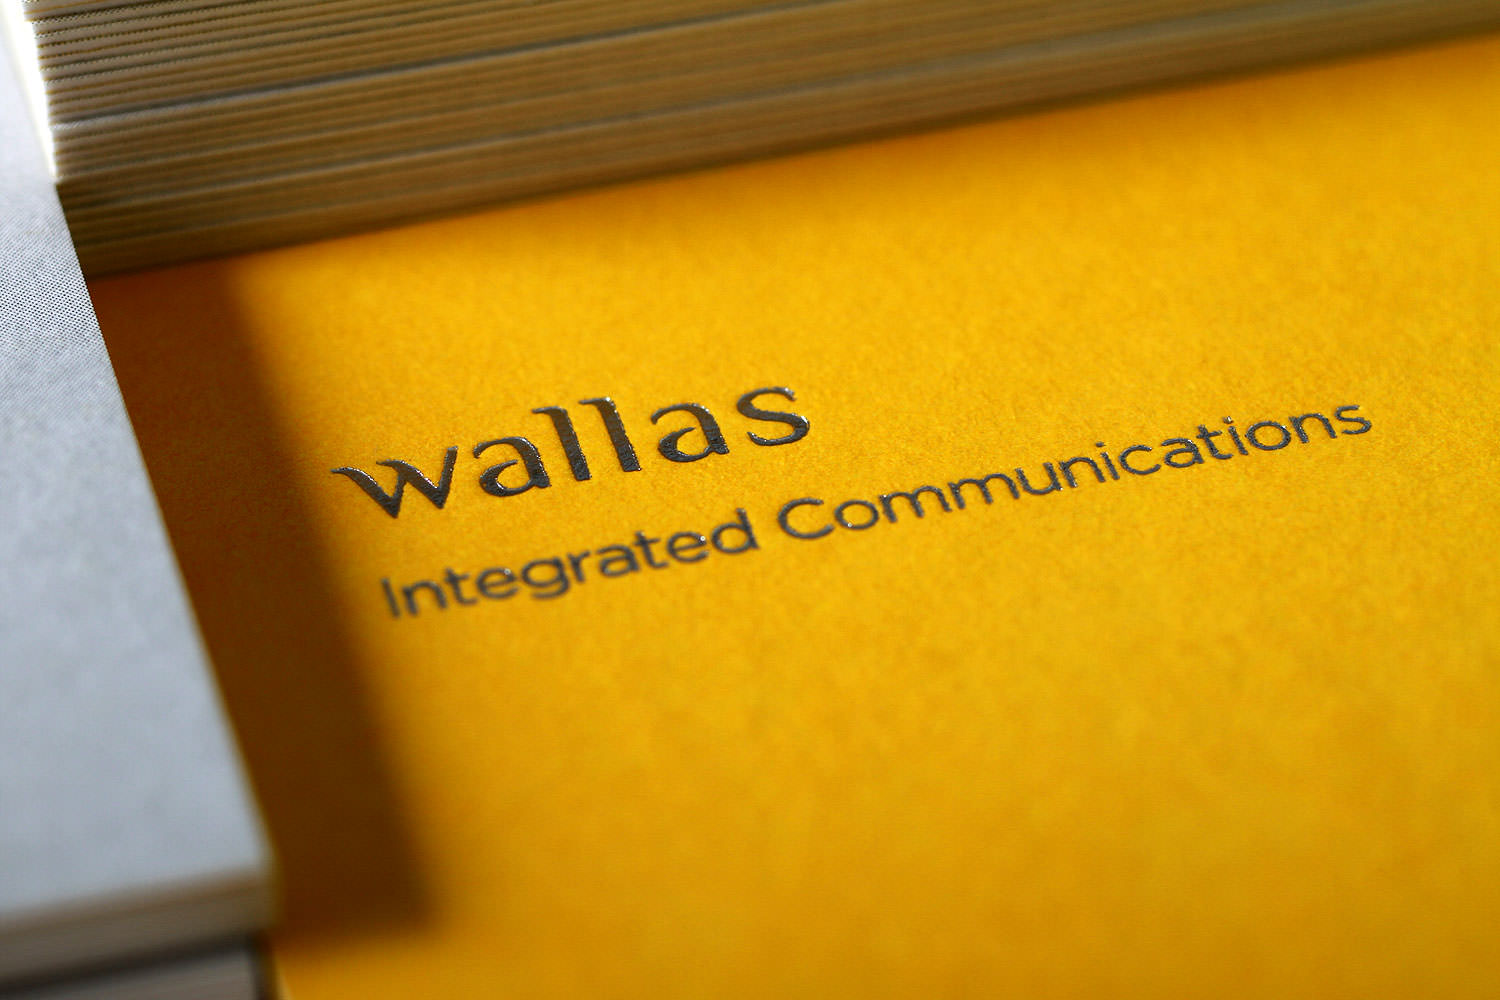 Branding identity design for Wallas Inc, an integrated agency in SG - Foil-stamped logo on Business cards.